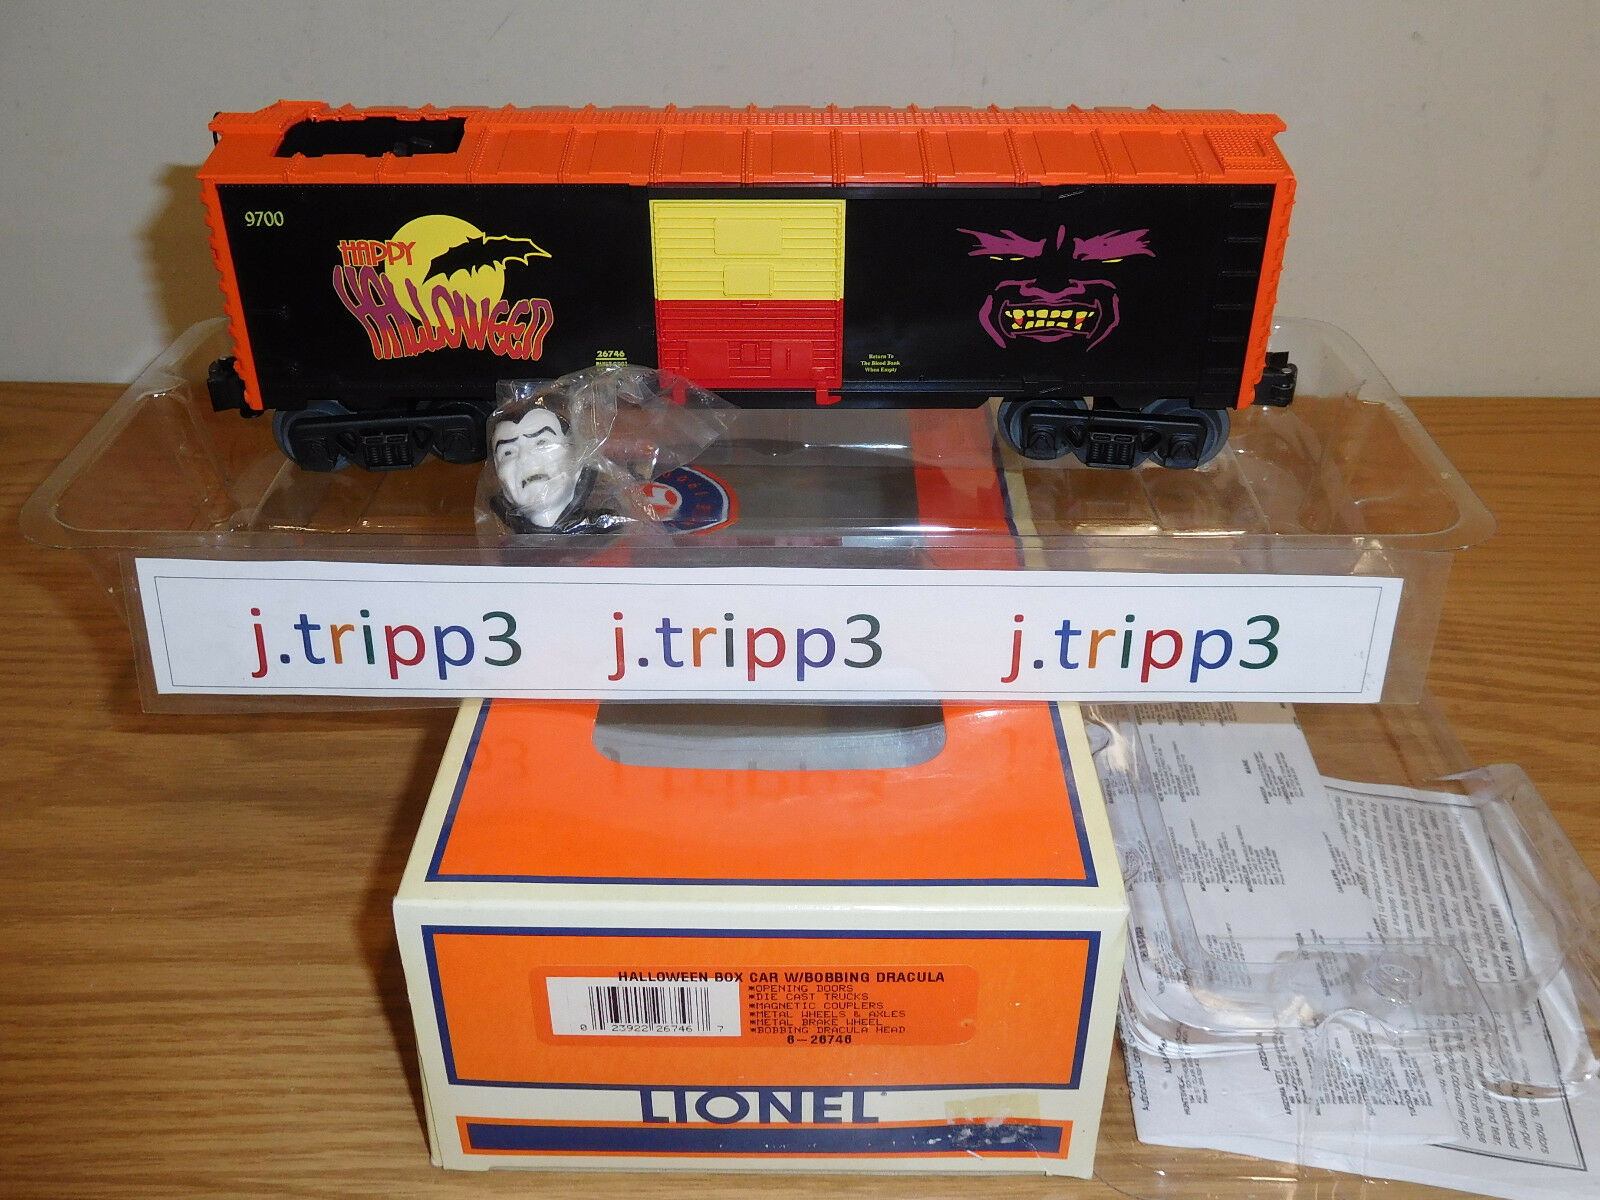 LIONEL 626746 HtuttiOWEEN BOBBING DRACULA VAMPIRE ANIMATED scatolaauto TRAIN O GAUGE